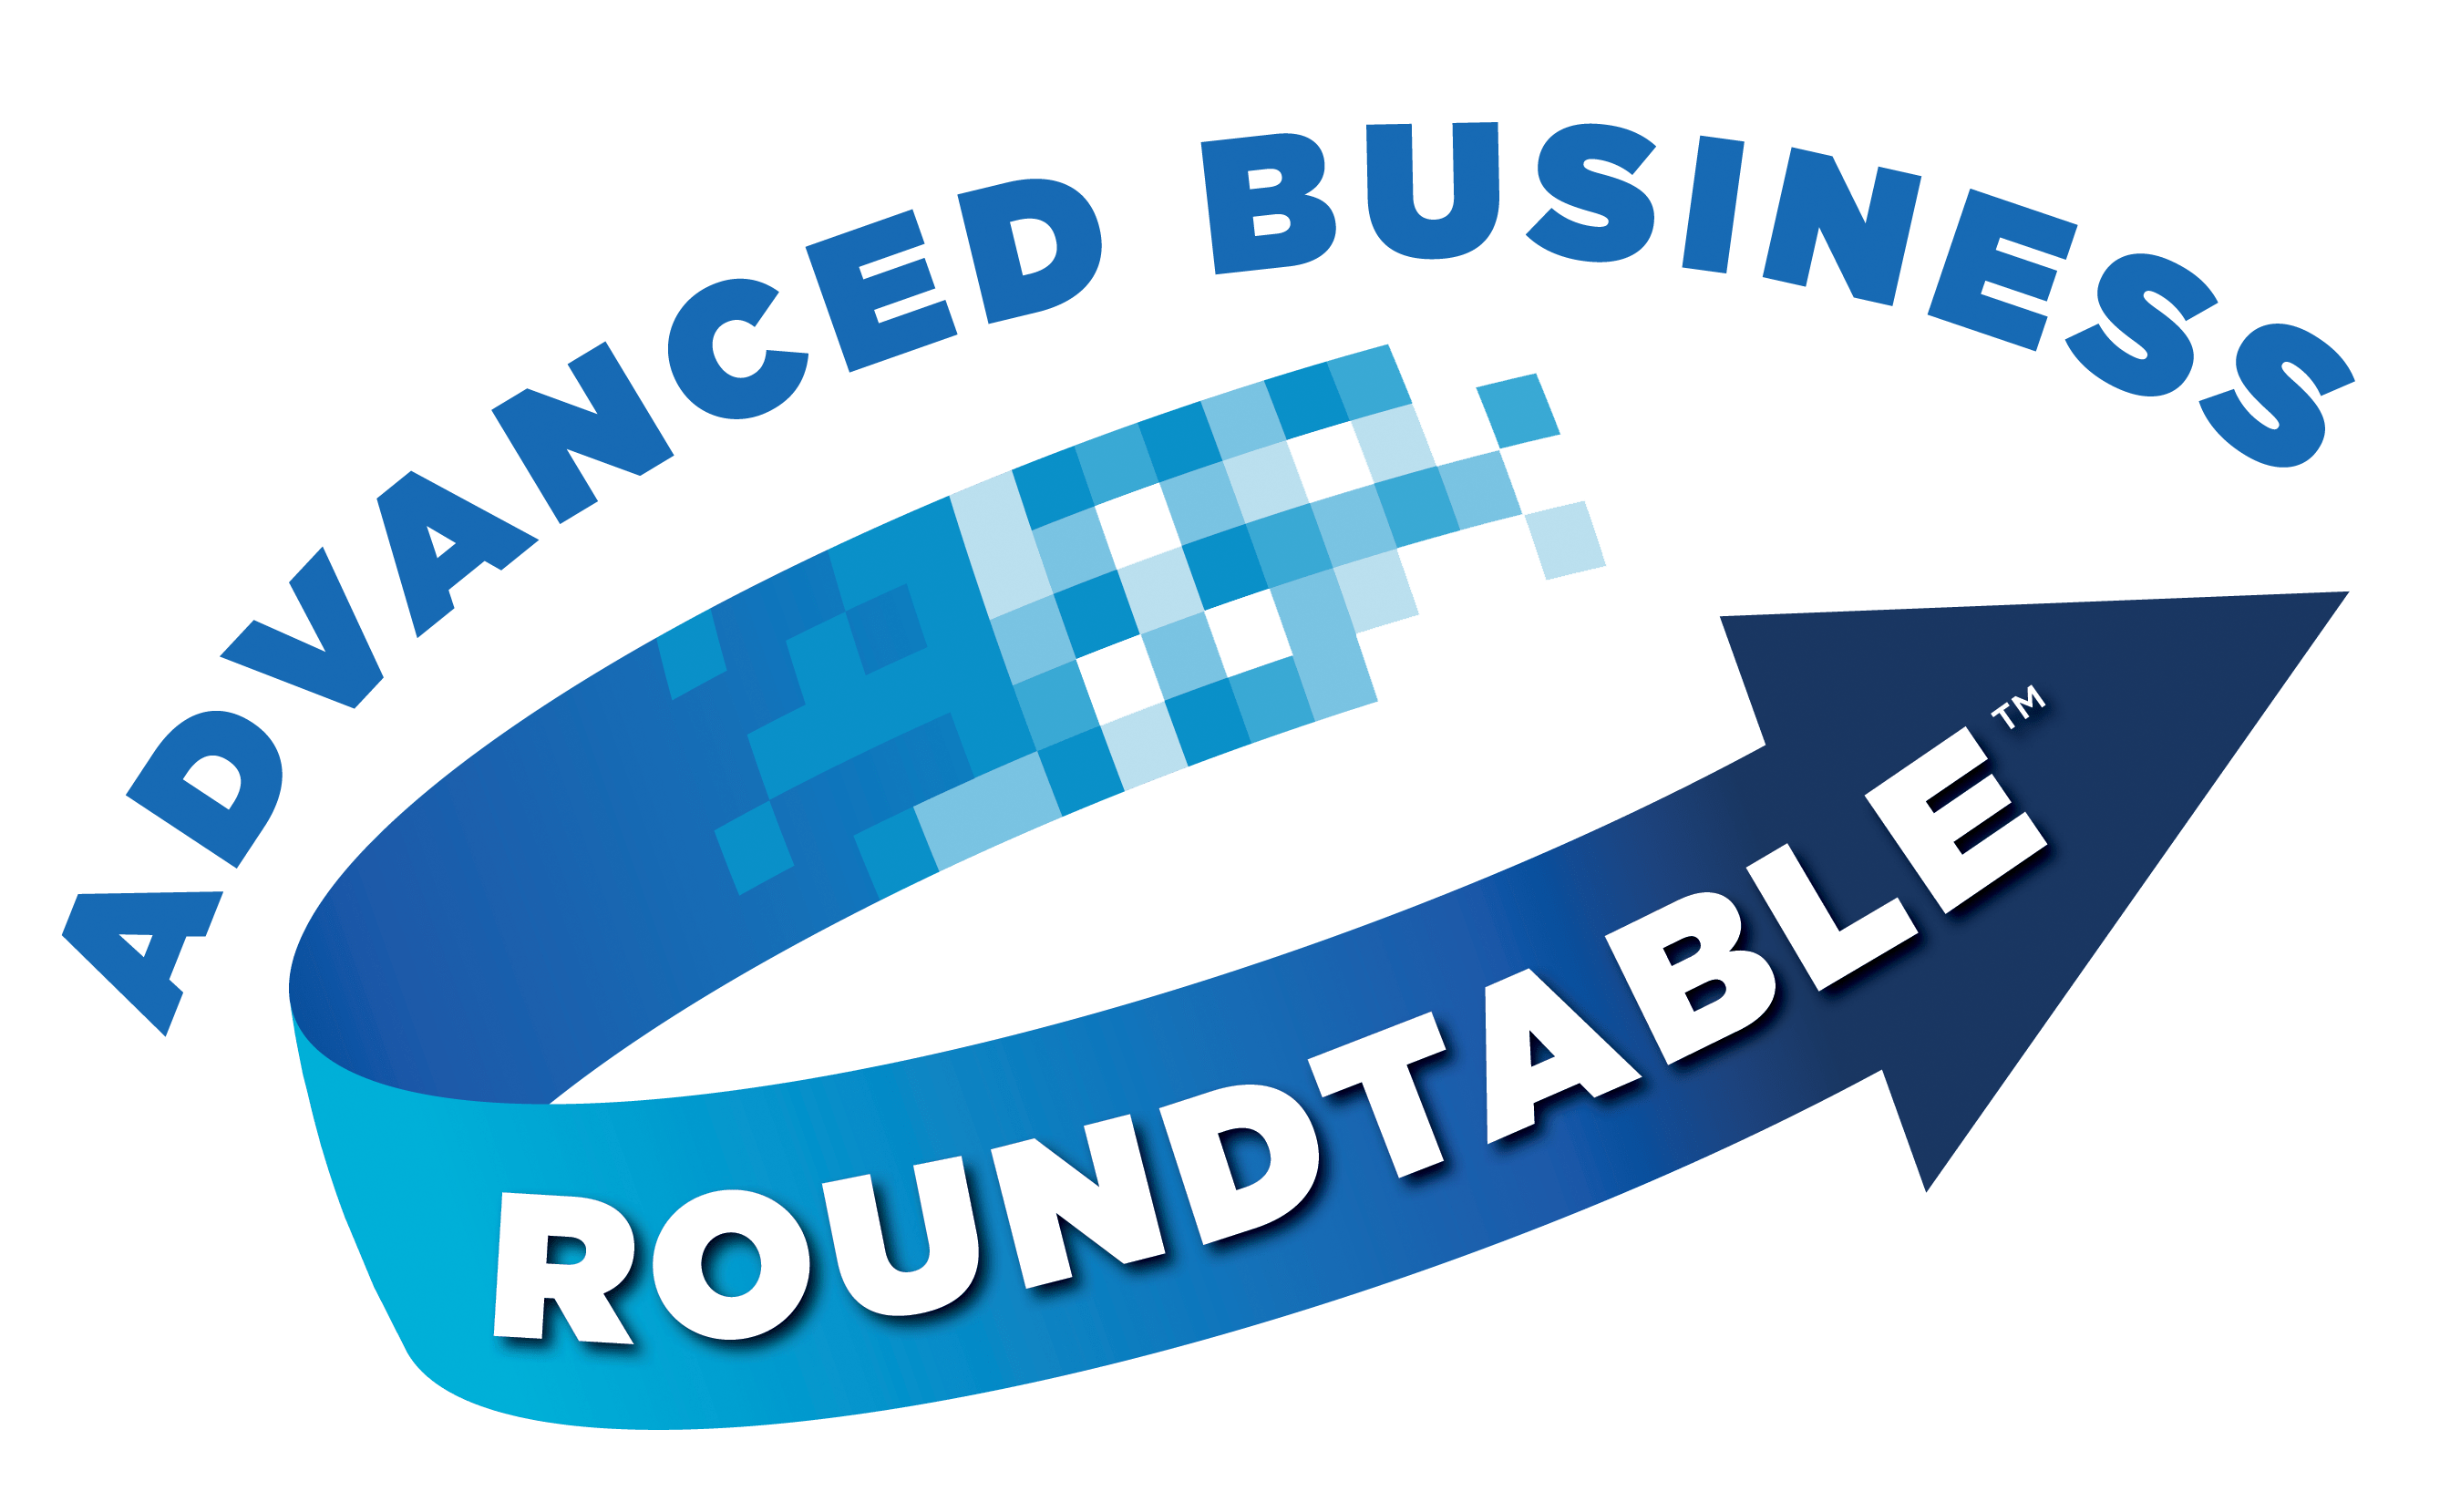 Round Table Loomis.Home Advanced Business Roundtable Christian Business Networking